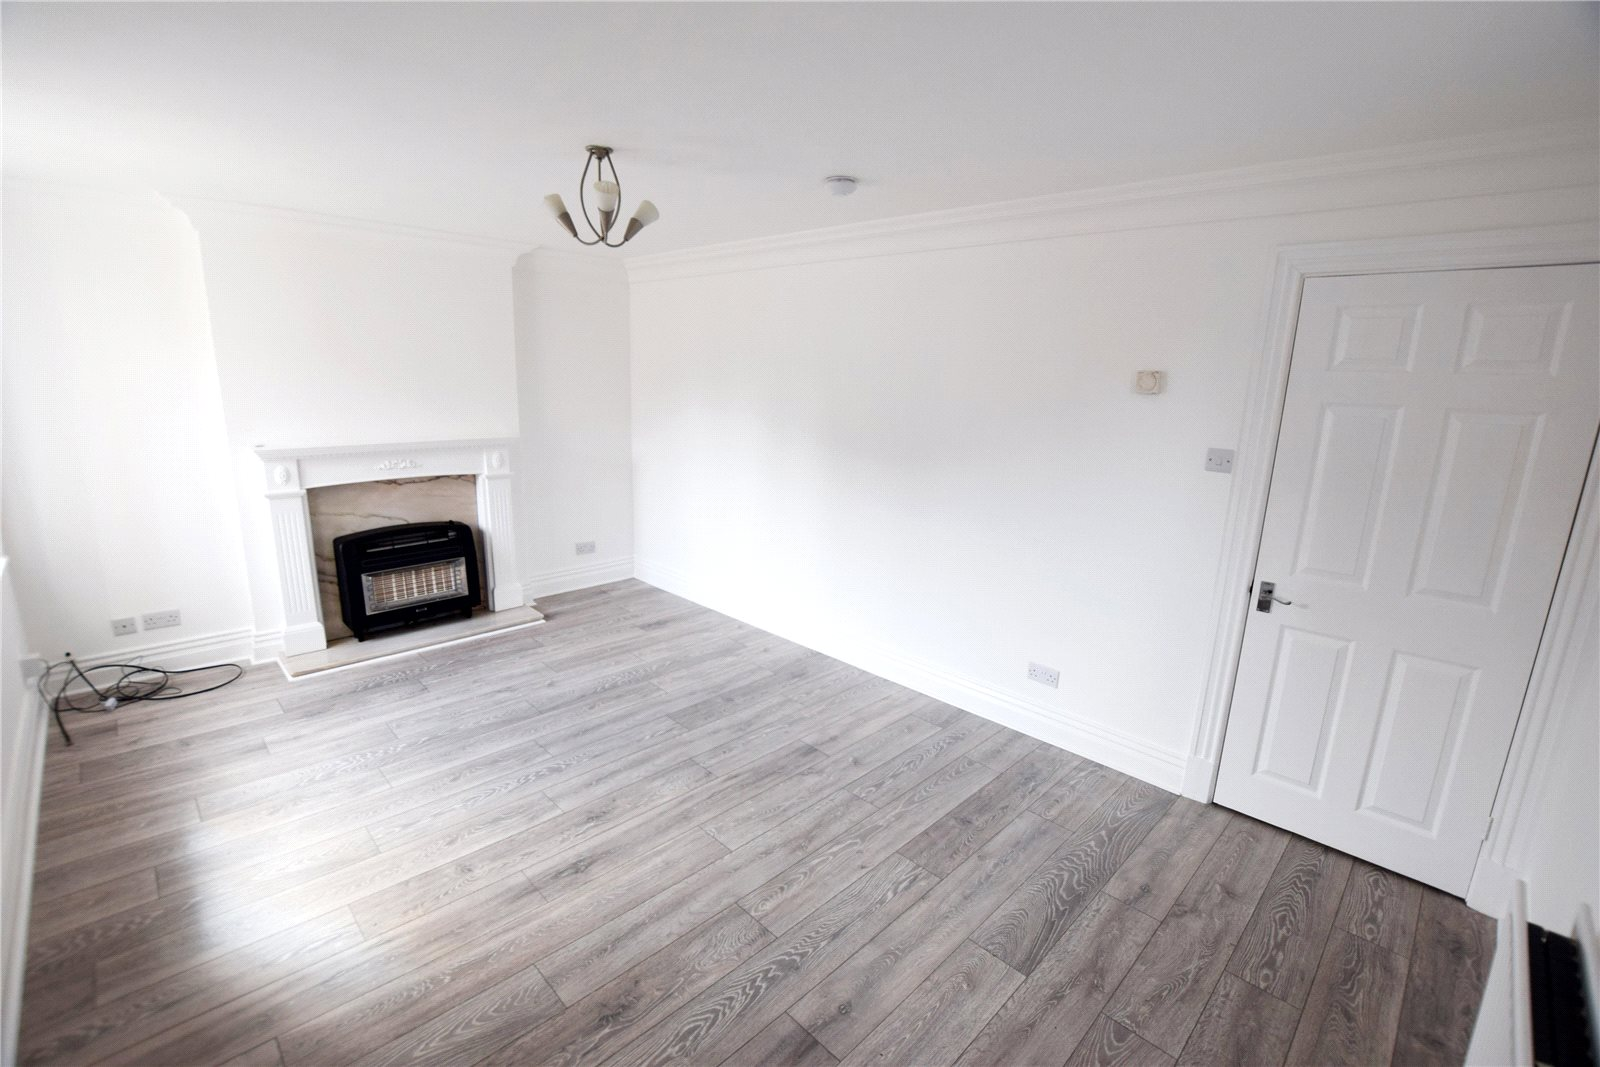 Property for sale in Wortley, interior recpetion room